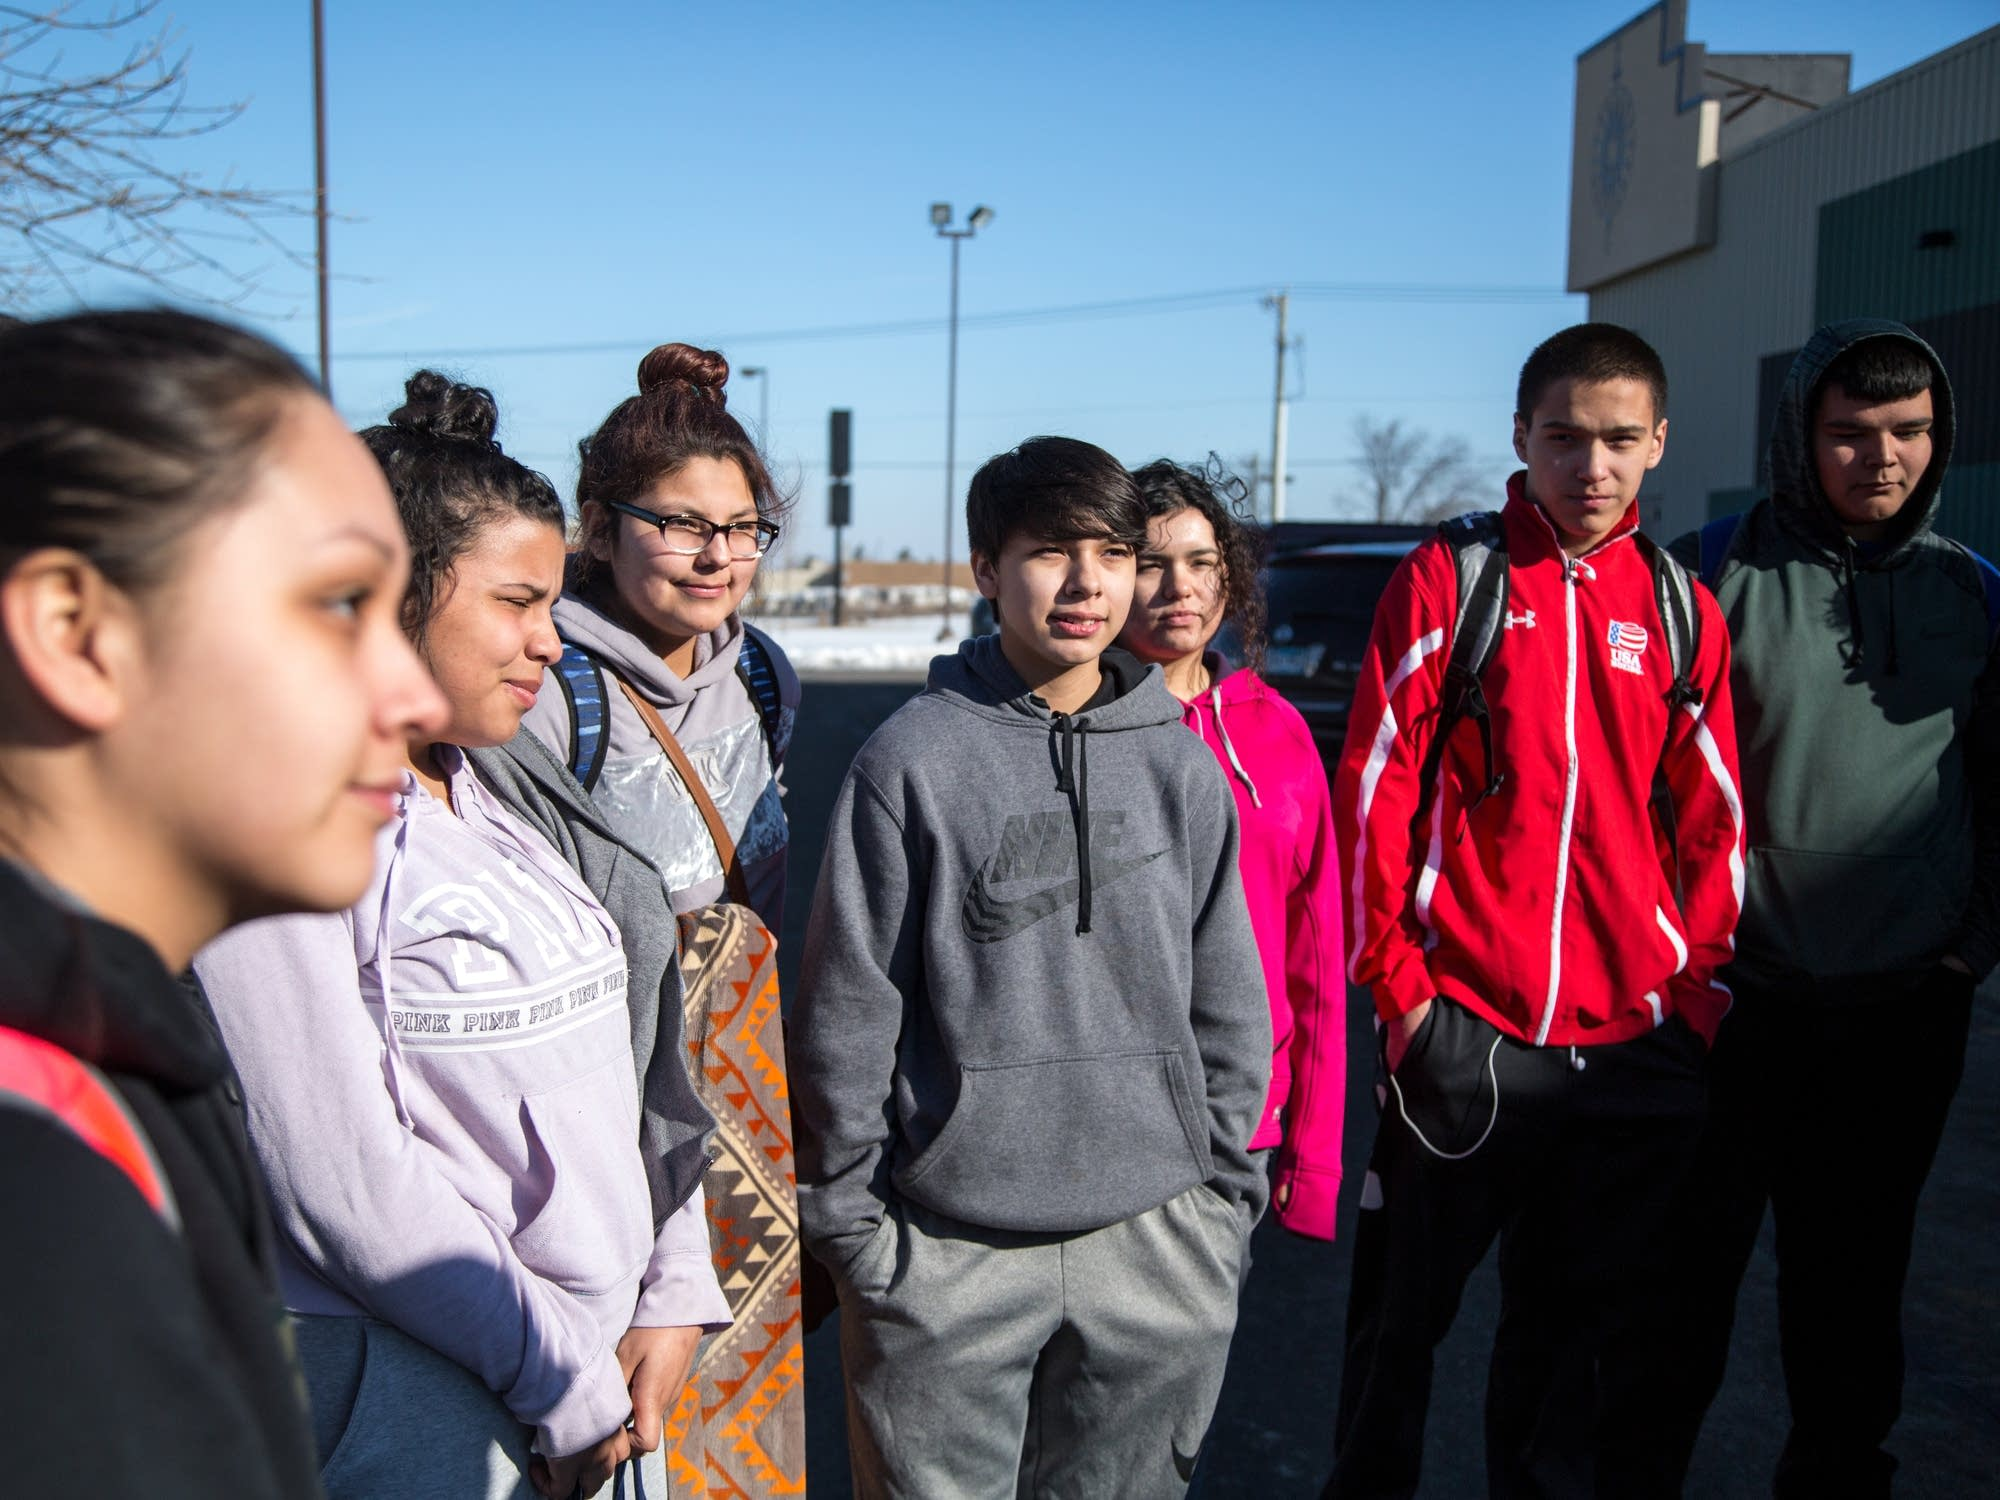 A handful of students walked out of Trek North Charter school in Bemidji.